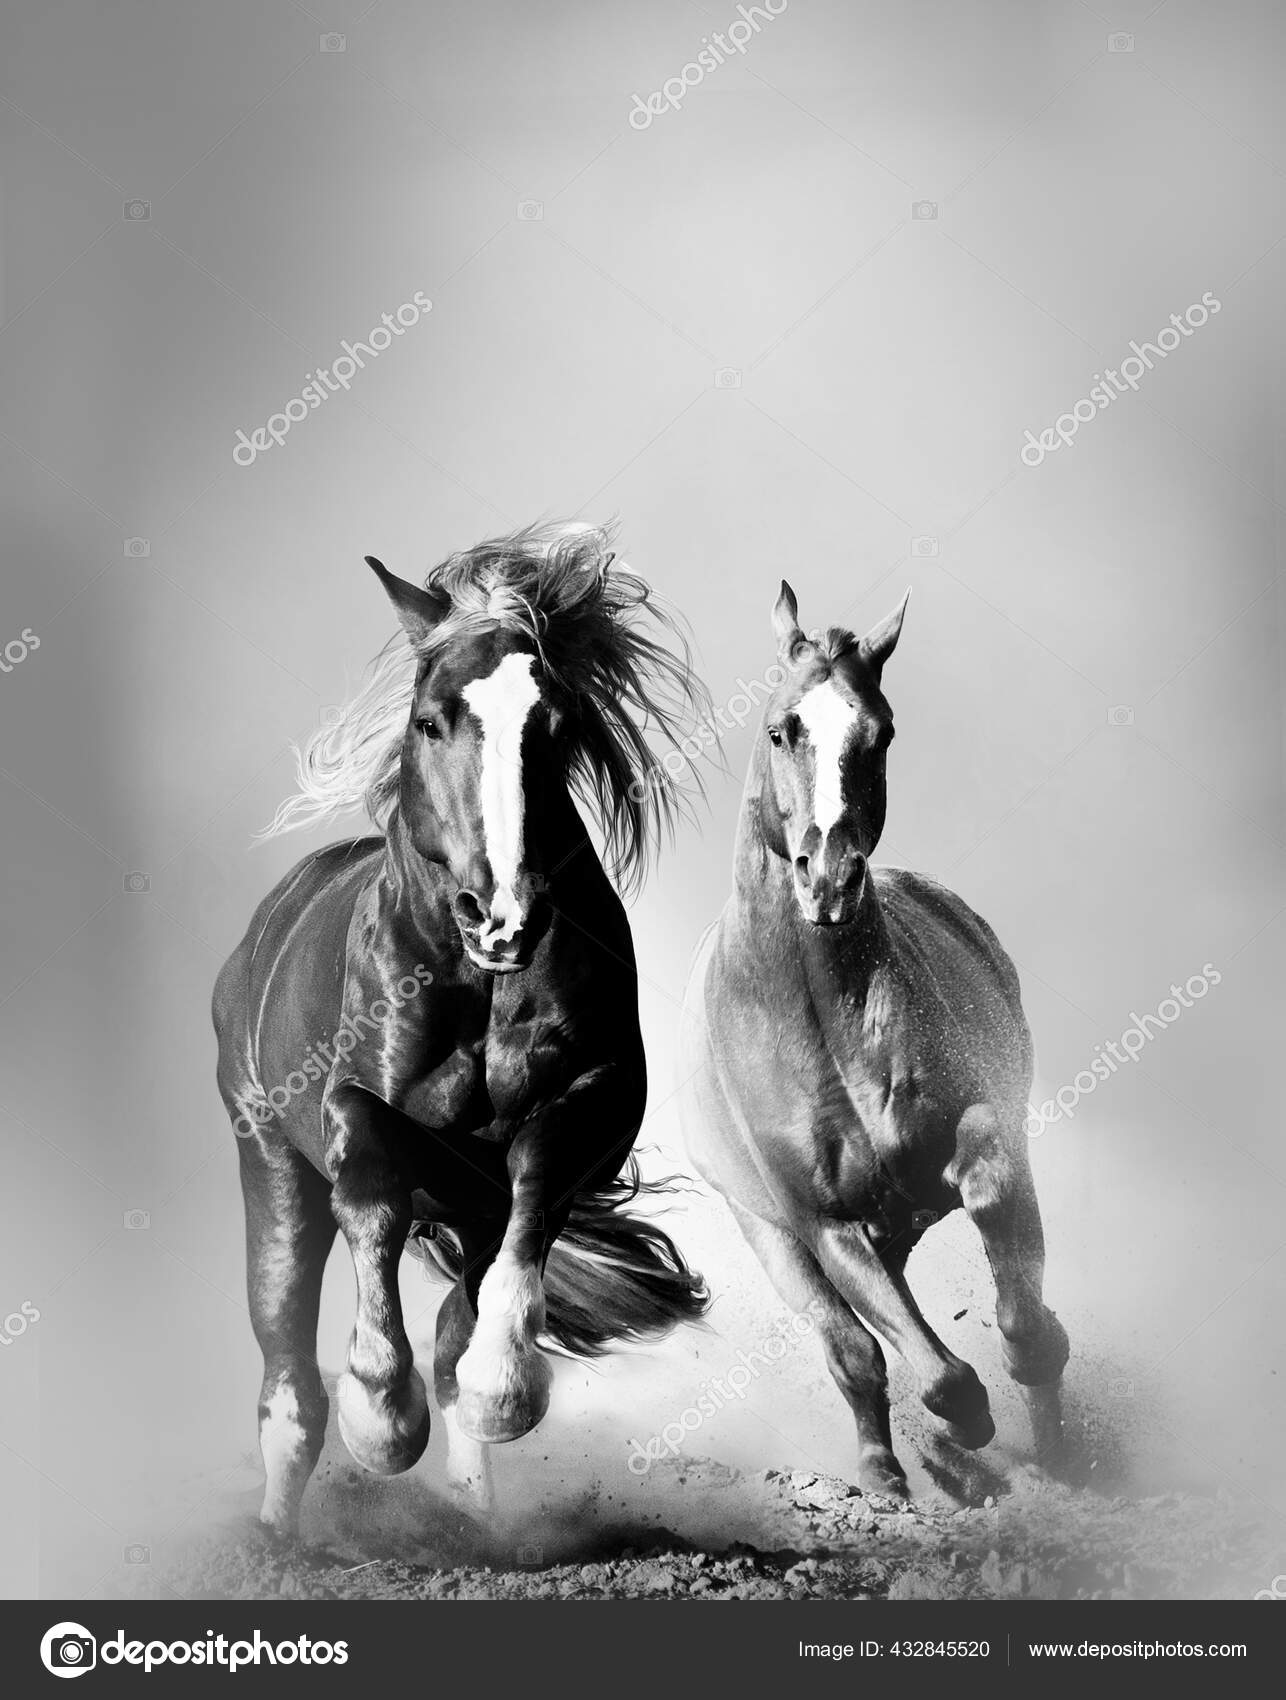 Two Wild Horses Running Together Dust Front View Monochrome Image Stock Photo C Mari Art 432845520